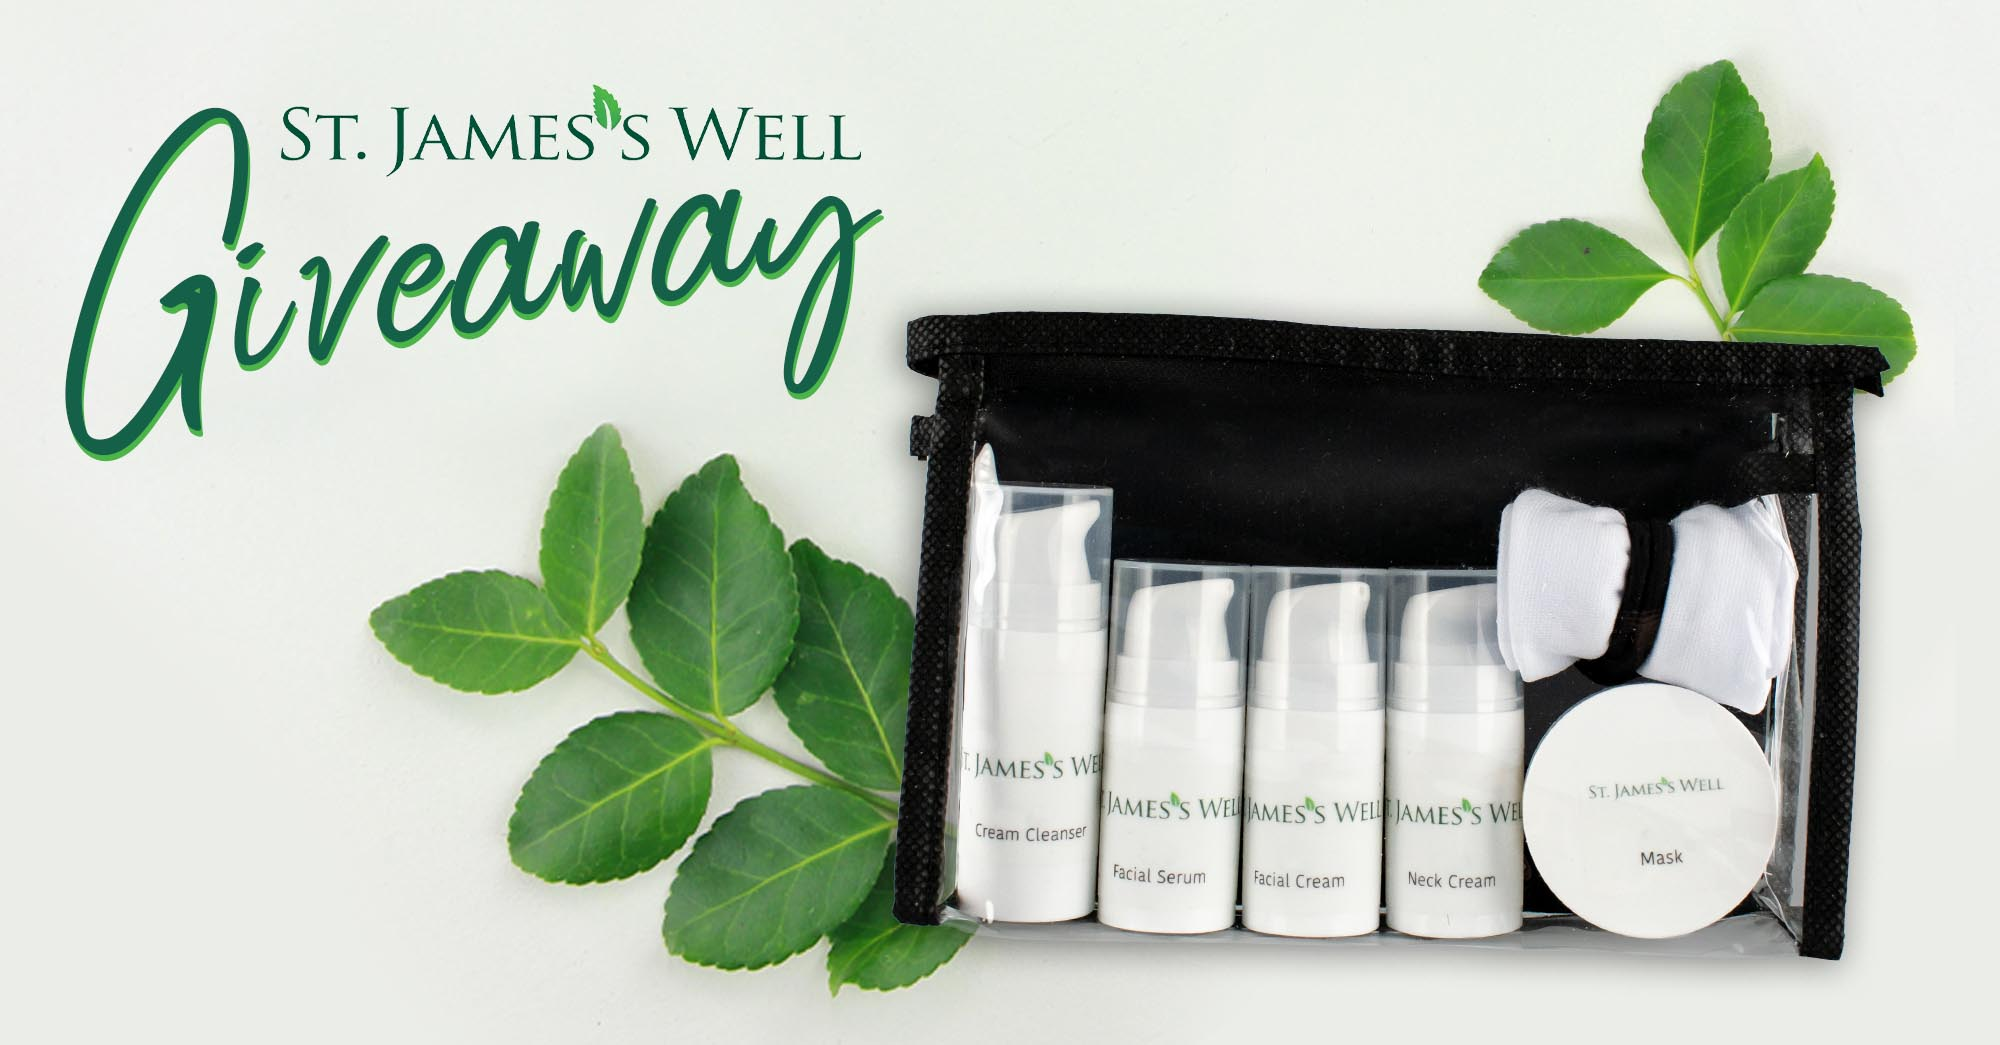 St. James's Well Giveaway